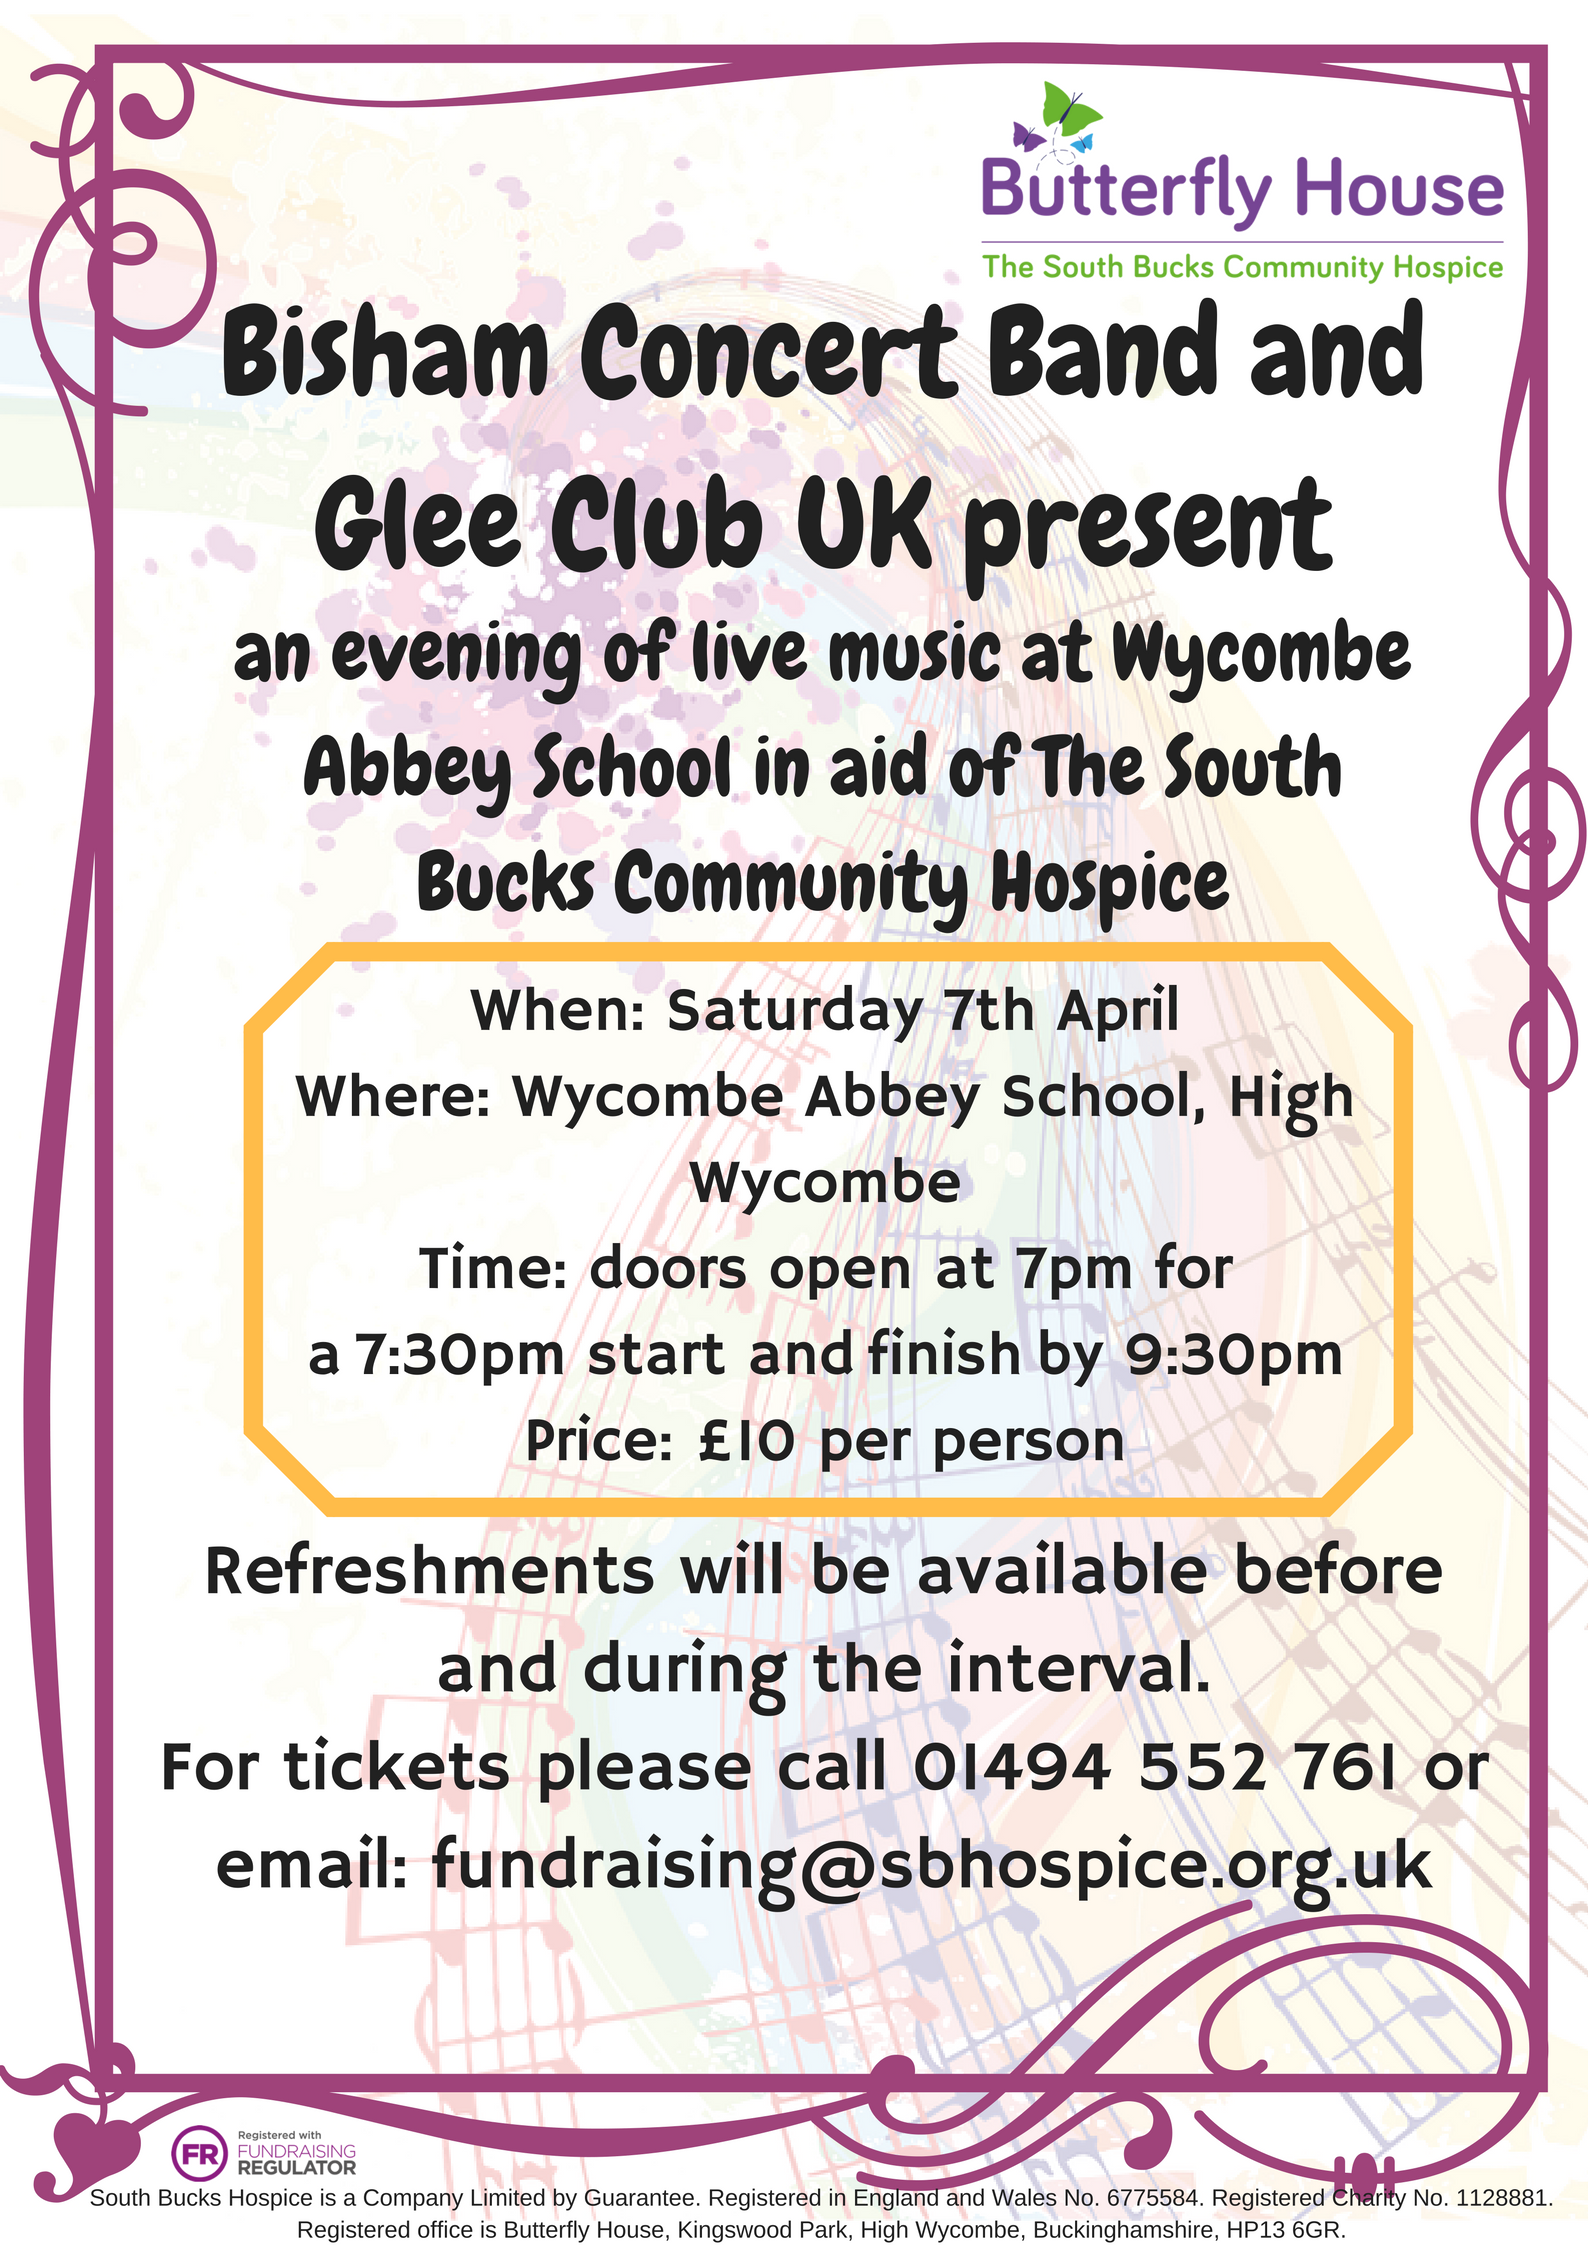 Bisham Concert Band And Glee Club Uk Final Image